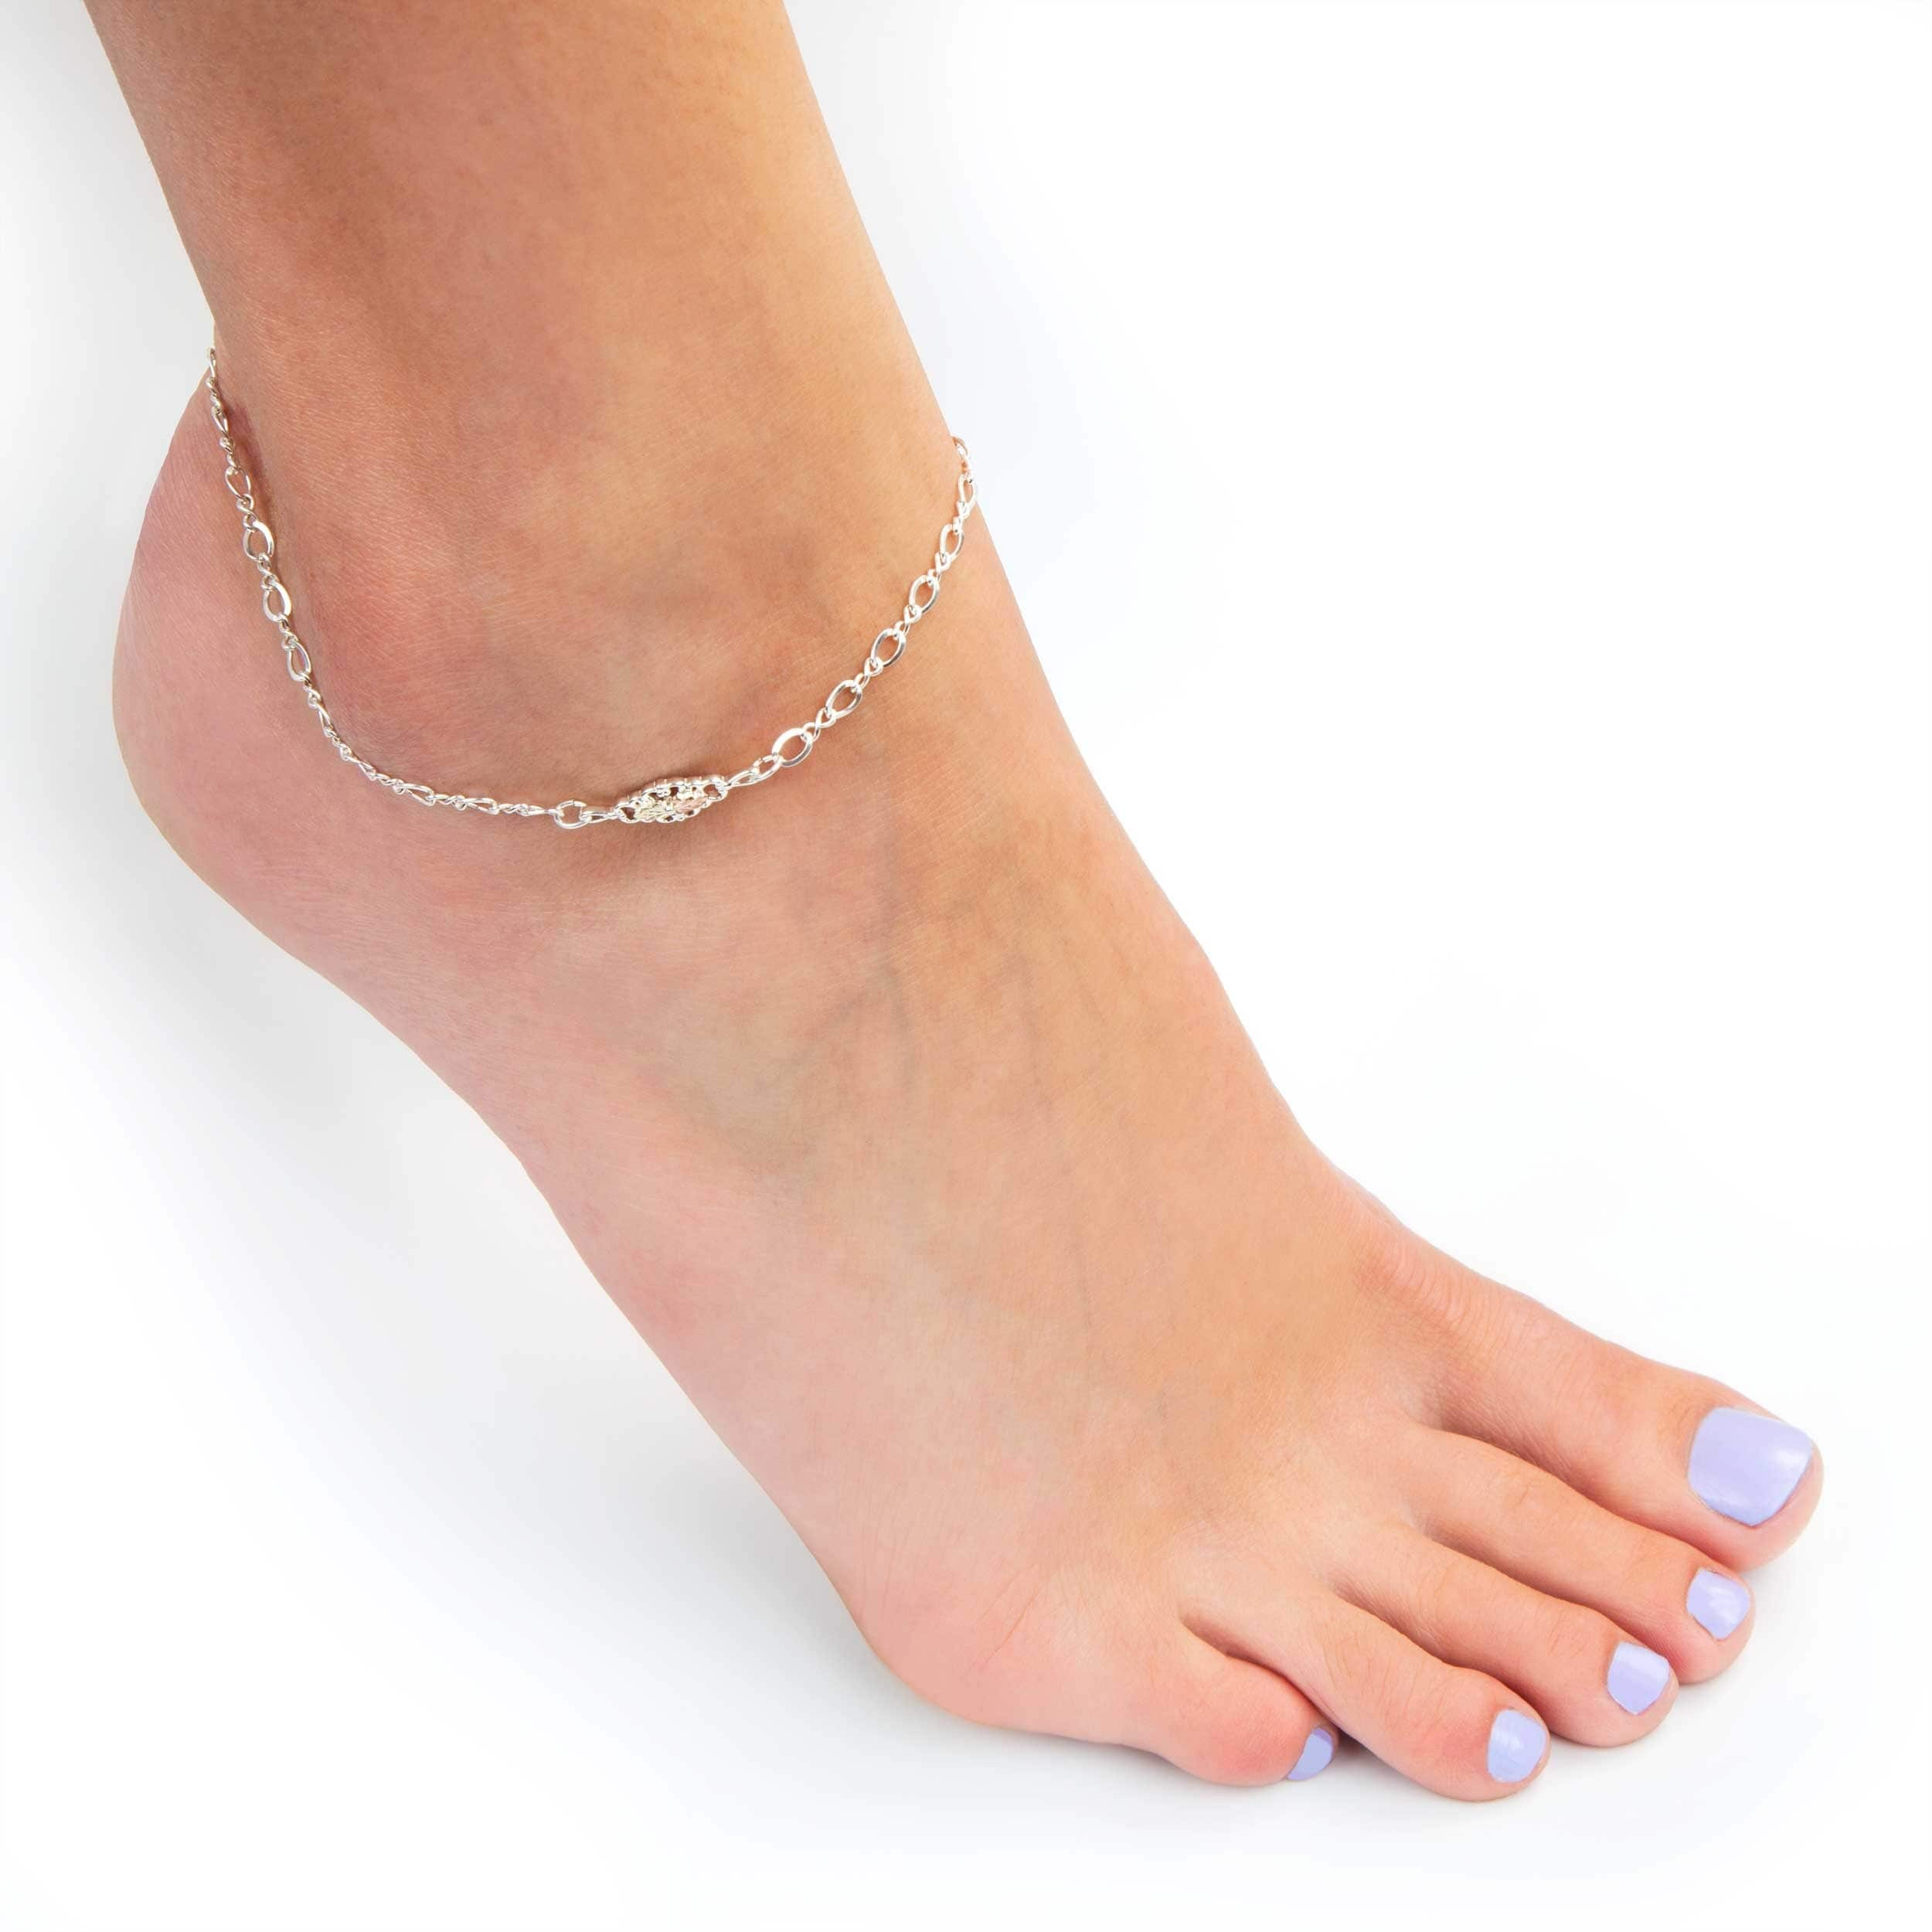 design womens p women ankle bracelet jewelry gold c anklet ctjszqo bar chain